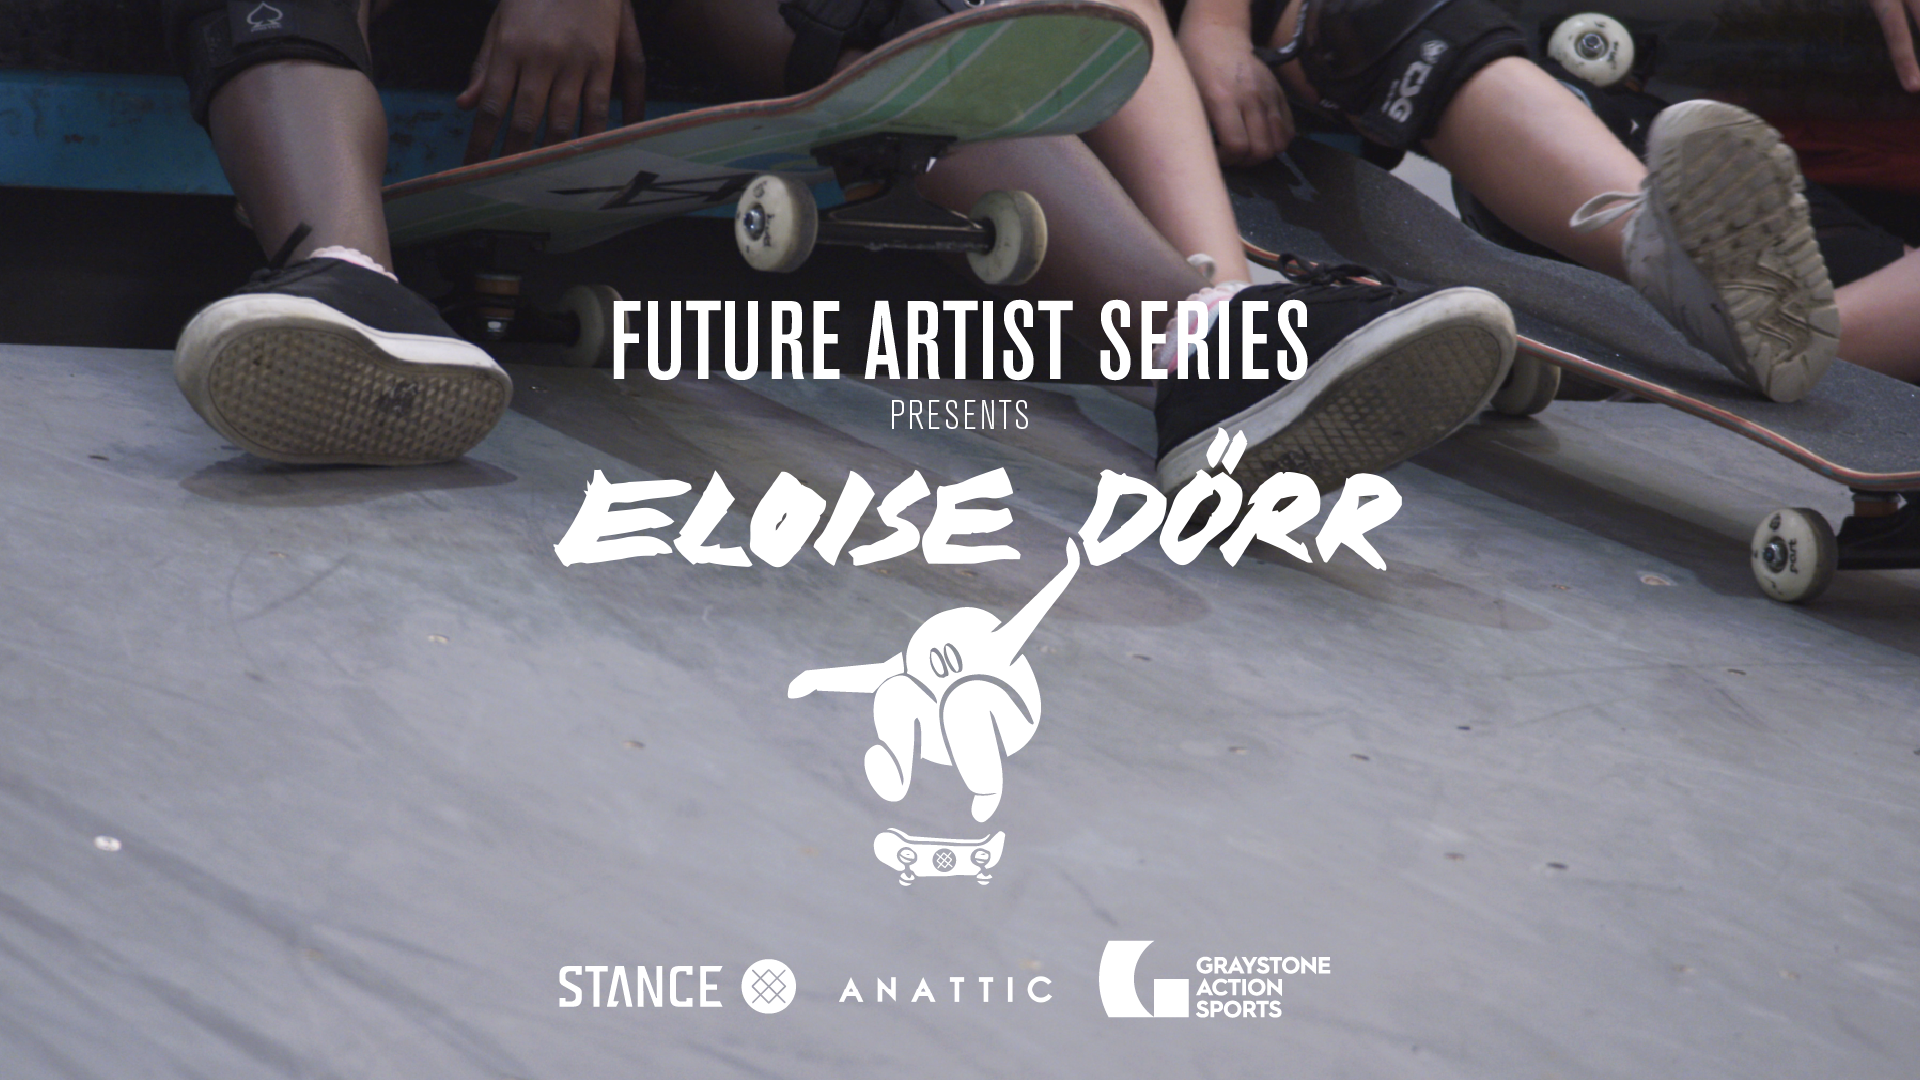 STANCE | Future Artist Series presents Eloise Dorr